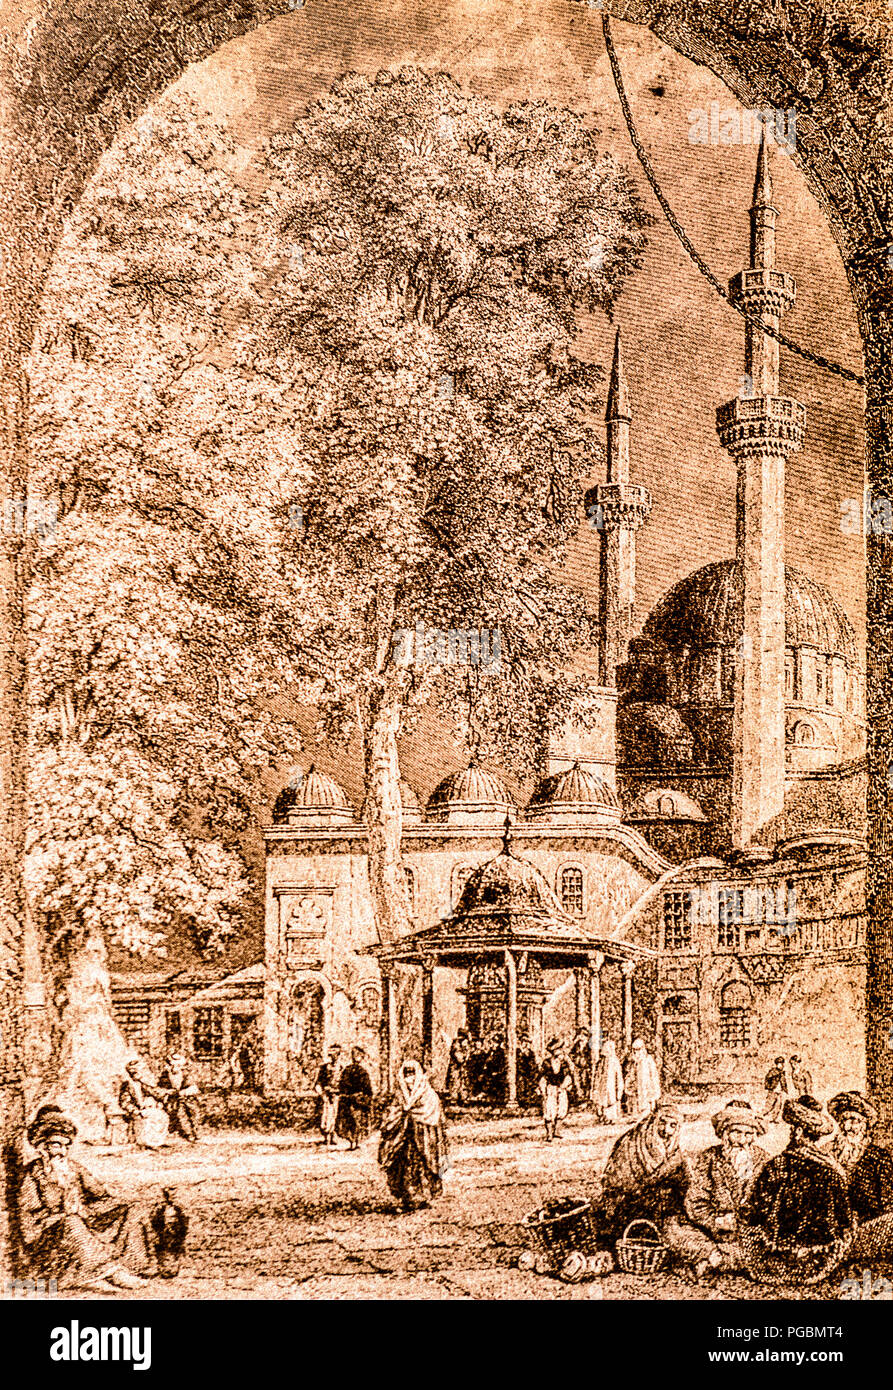 The Tomb of Kair Ed Din Barbarossa said in Constantinople, place revered by Muslims (Print XIX Century) - Stock Image